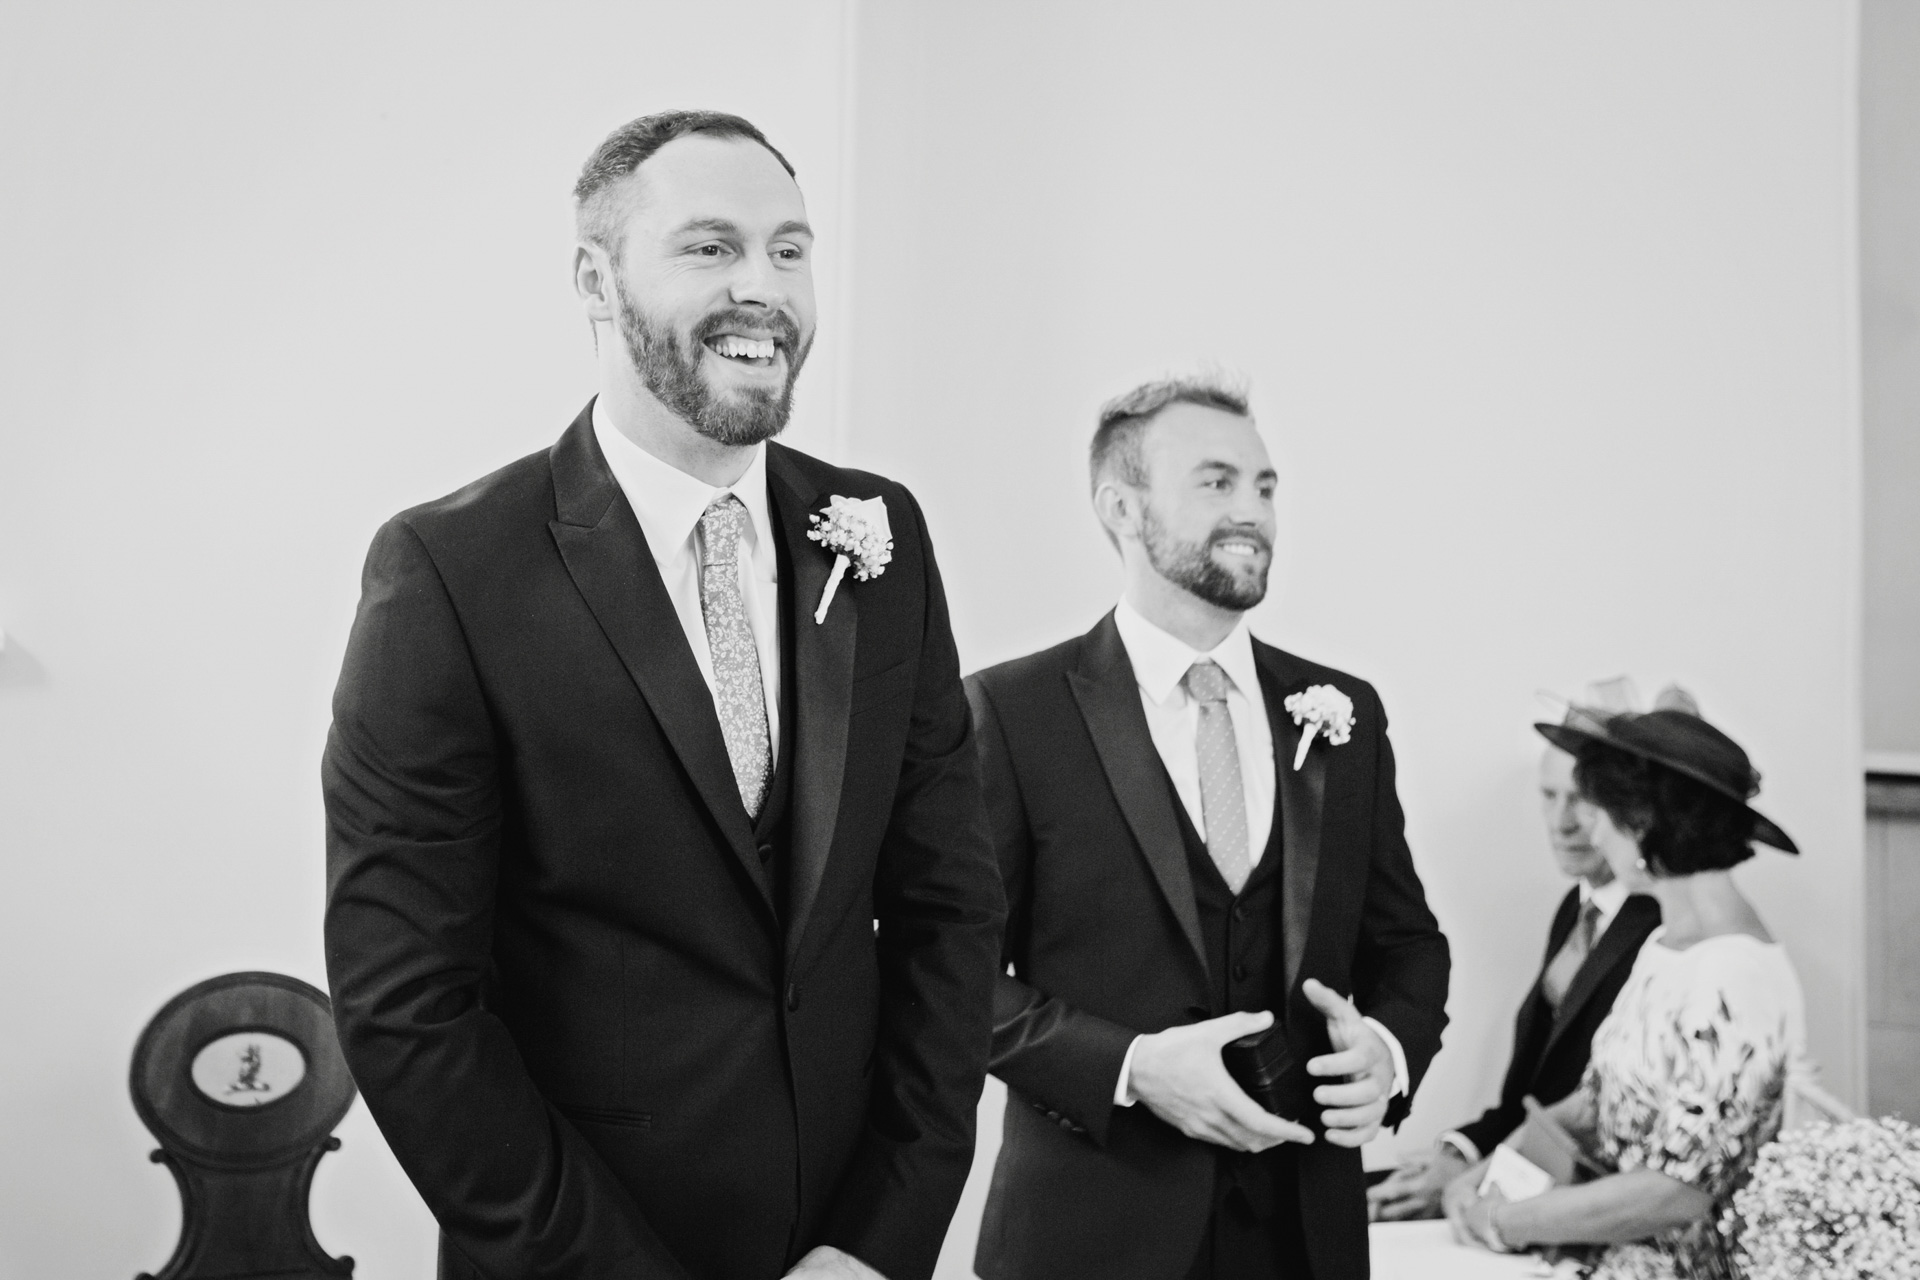 2017-WEDDING-portfolio-gemmawilliamsphotography_263.jpg